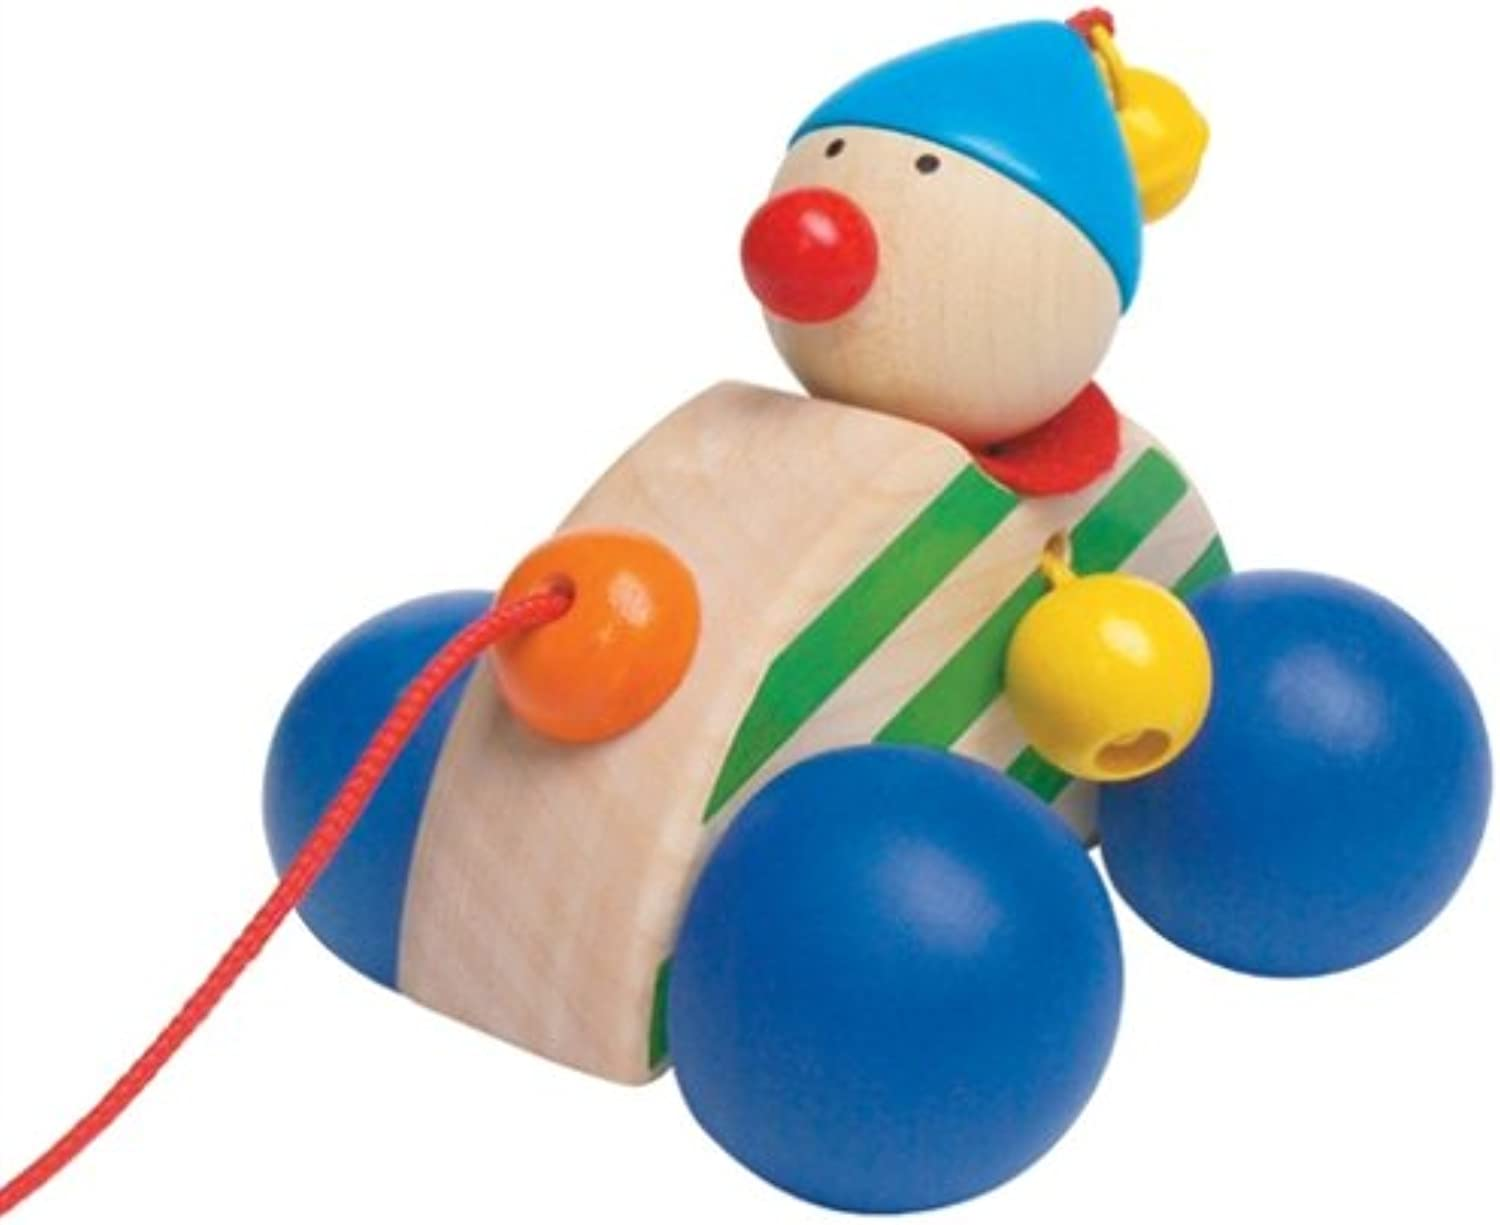 1622 Autolino (Pull-along Toy) - Selecta Wooden Toys Selecta Spielzeug